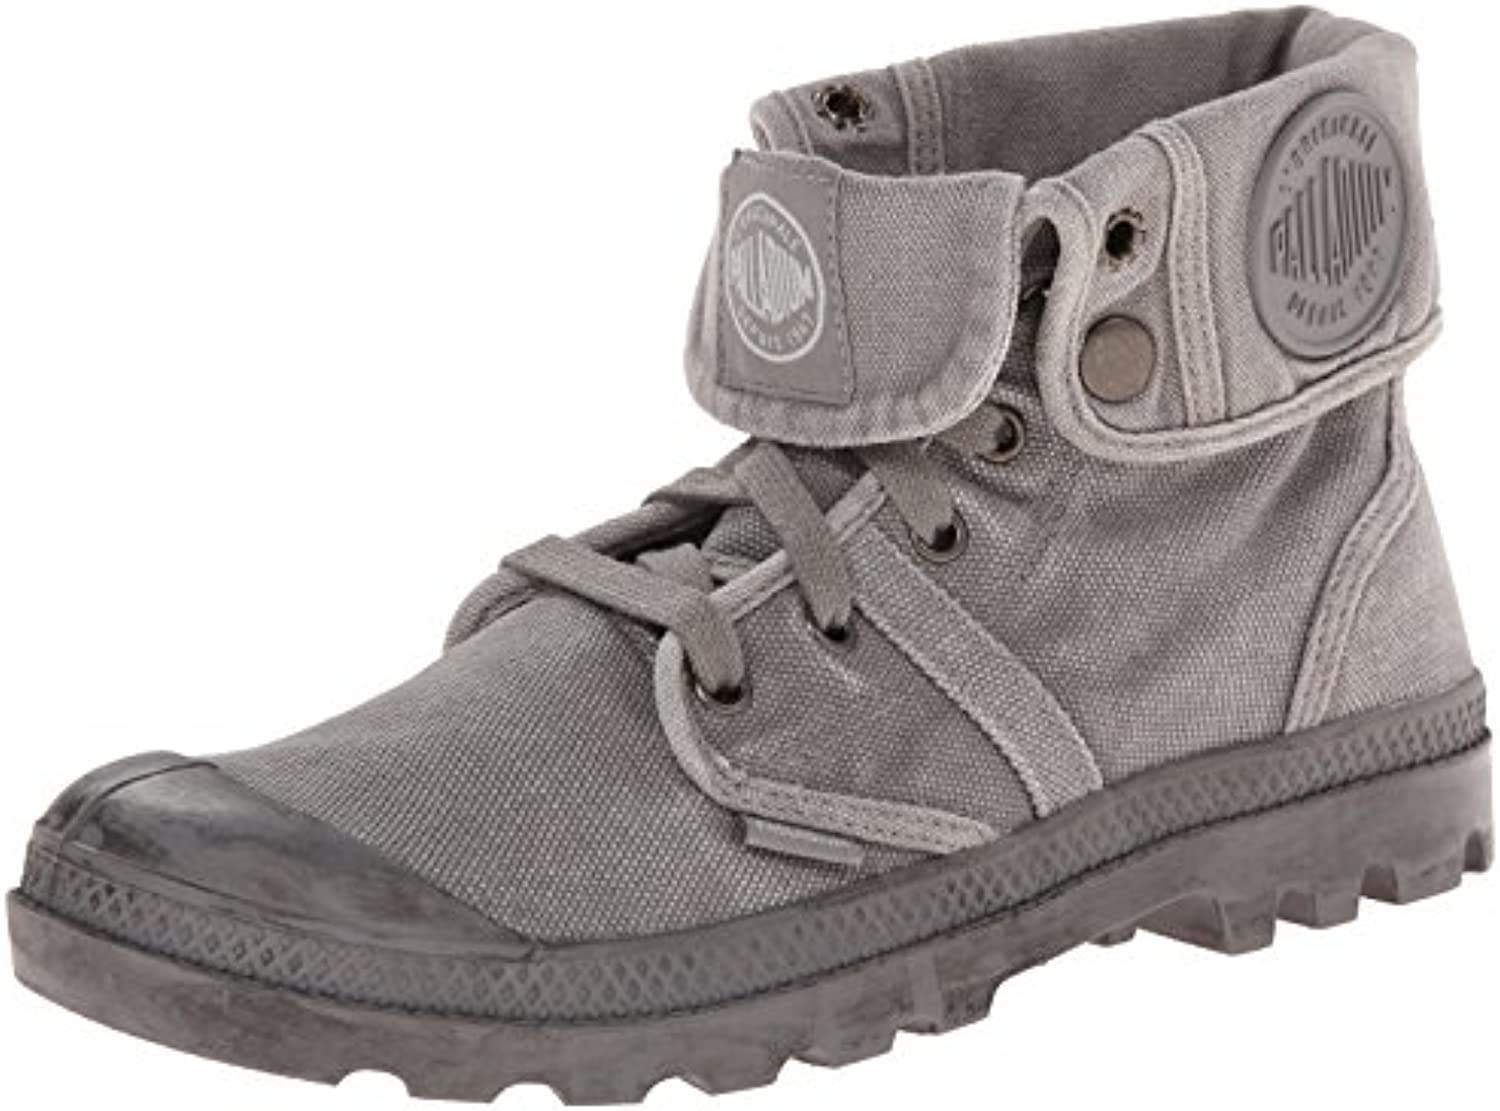 Palladium Palladium Palladium  Pallabrouse Baggy, Hohe Sneakers femme 46261f